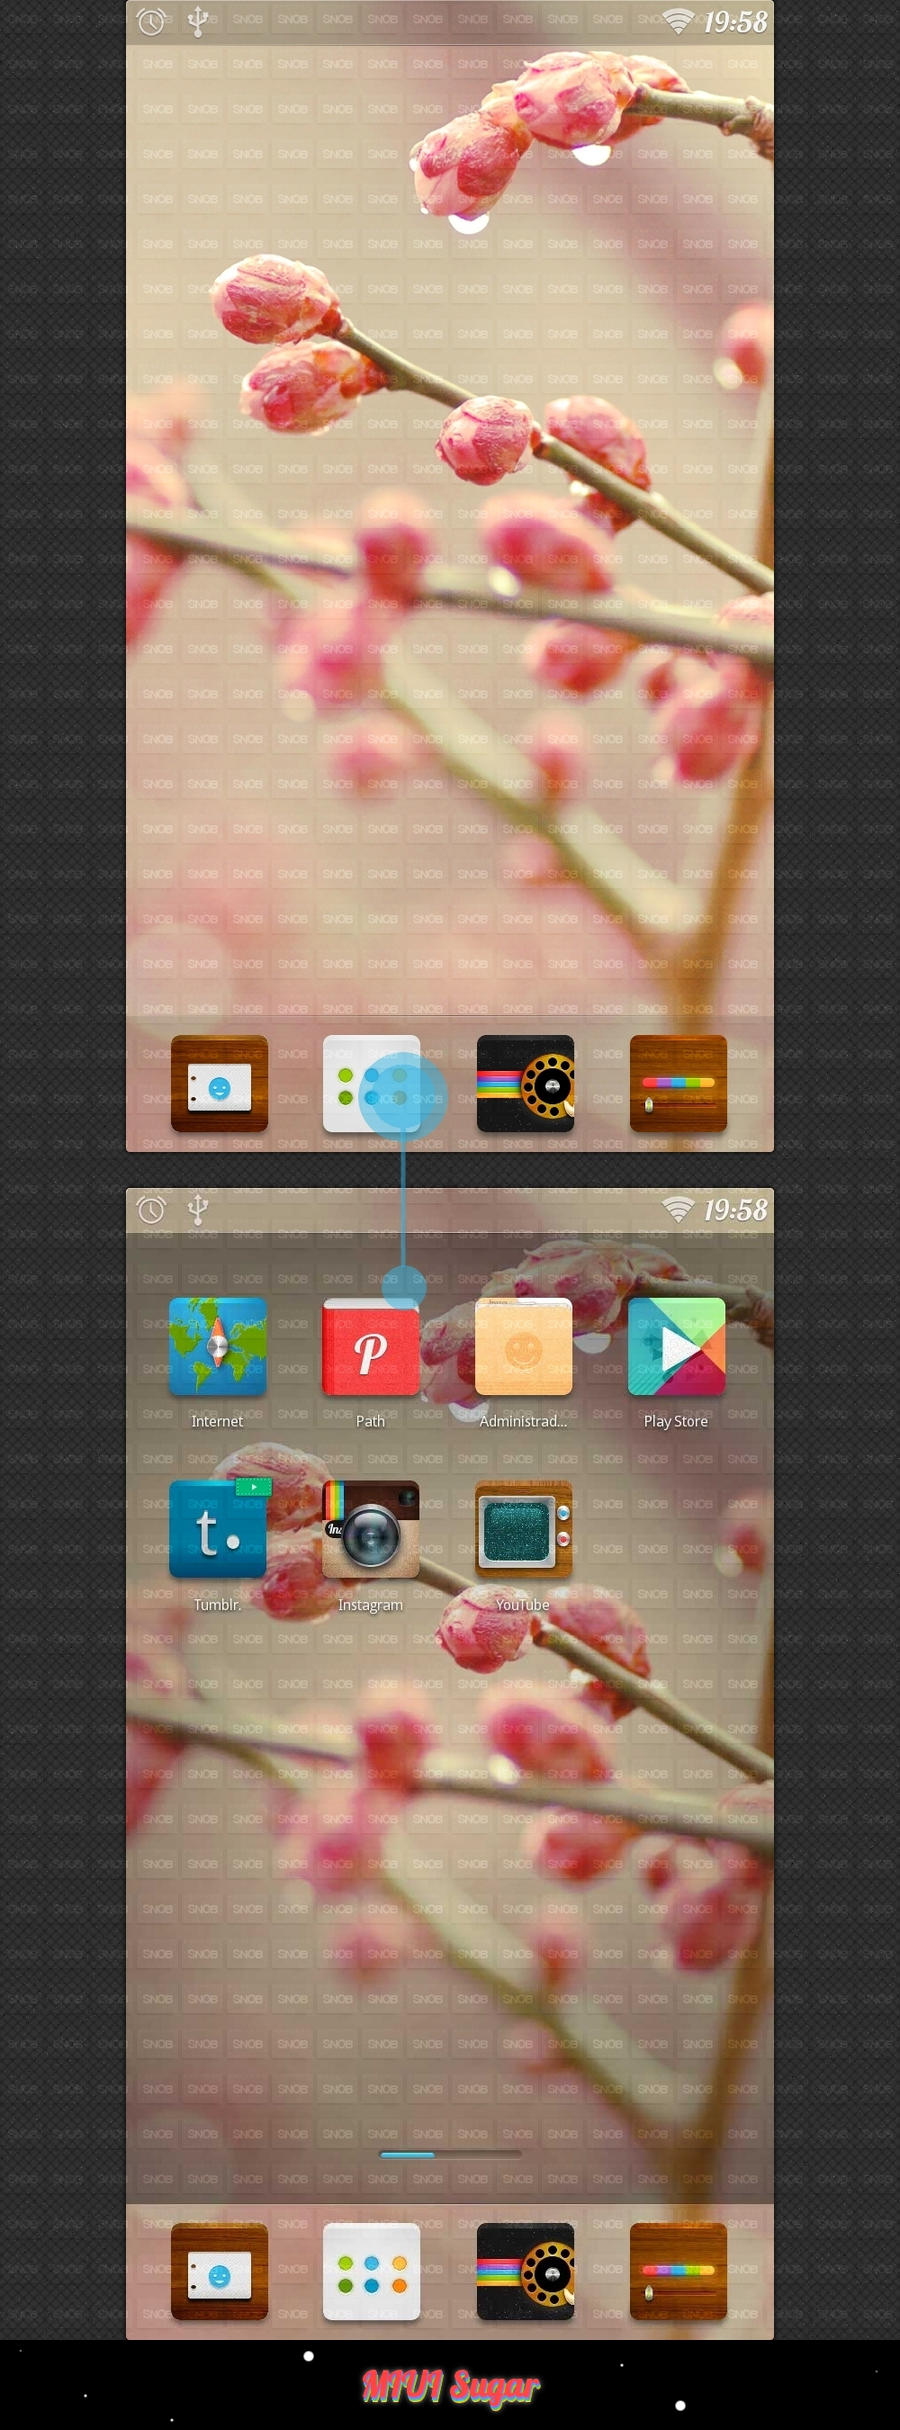 Sugar MIUI PREVIEW by SNOBAwM